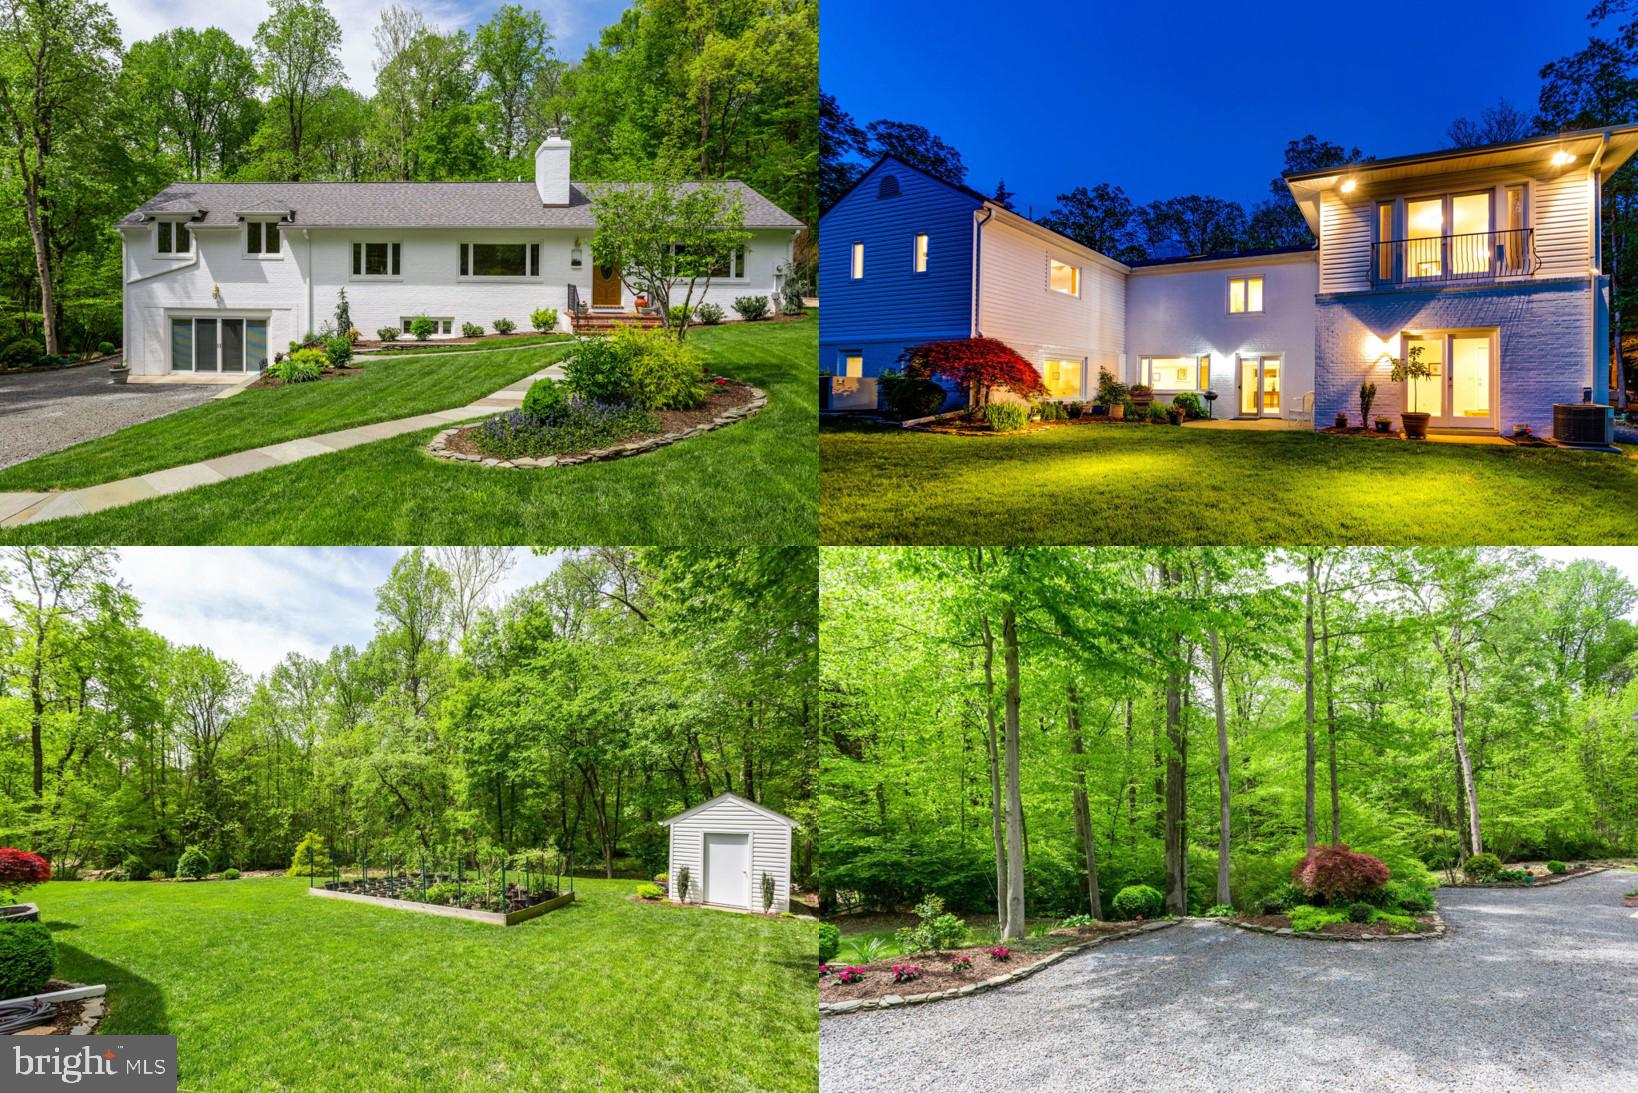 """**OPEN SATURDAY, 7/13, 2PM-4PM** One-of-a-kind rambler on impeccably landscaped lot backing to peaceful stream and 20+ acres of parkland and Green Spring Gardens!  This home displays pride in ownership at the highest level - expanded and rebuilt in 2004 with new framing, electrical, plumbing, mechanical systems, and much more!  5 bedrooms, 3.5 baths and nearly 4,800 sq ft of finished space. Bright and open floorplan with chef's kitchen, including oversized island, top of the line appliances (48"""" Wolf range + vent hood, 48"""" GE Monogram refrigerator), and 4 skylights to bring in lots of natural light.  New hardwoods throughout the main/upper levels and new carpet on the walkout lower level.  All completely new bathrooms as part of the 2004 rebuild/expansion (plumbing, tile, fixtures, location, etc.).  Luxurious master suite with large walk-in closet and French doors that overlook the serine backyard and stream. The attached master bath includes beautiful tile work, separate jetted tub, oversized shower, and large vanity.  The light filled lower level includes a huge rec room with gas fireplace, 2 spacious bedrooms, full bath, built-in cabinetry w/granite bar, tons of storage, and walkout to concrete patio.  New roof in 2013 with architectural shingles, R-30 attic insulation, newly lined wood-burning fireplace, and whole house vacuum system.  New custom shed with matching roof in 2017.  Original planned 2 car garage was converted to """"finished storage space"""". Meticulously maintained landscaping throughout entire property ~ pots do not convey.  Escape from the daily hustle and relax in this paradise of a setting just minutes from 395, Crystal City, and Washington DC!"""